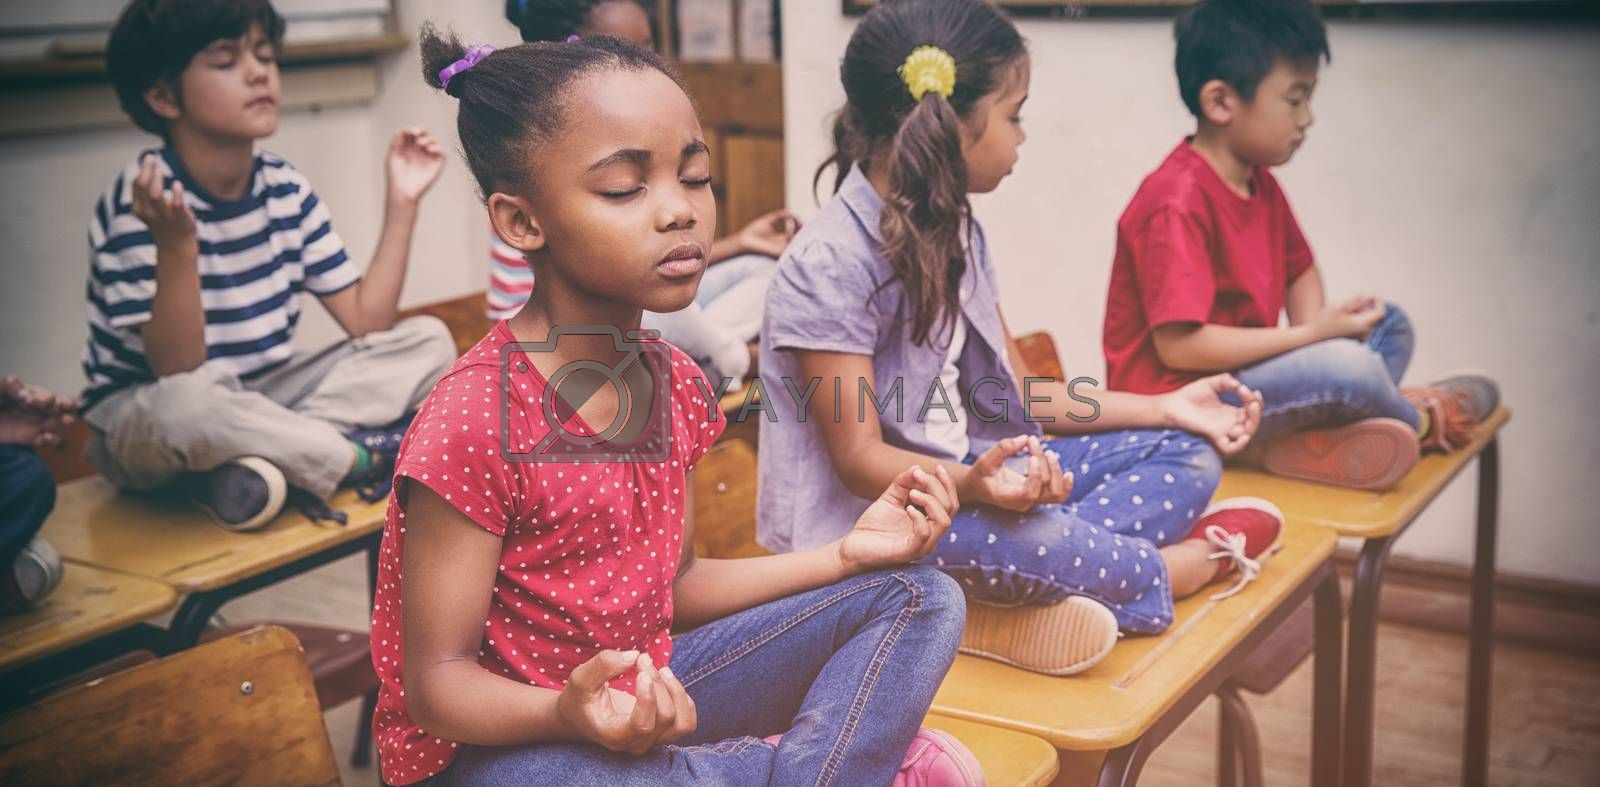 Pupils meditating in lotus position on desk in classroom by Wavebreakmedia